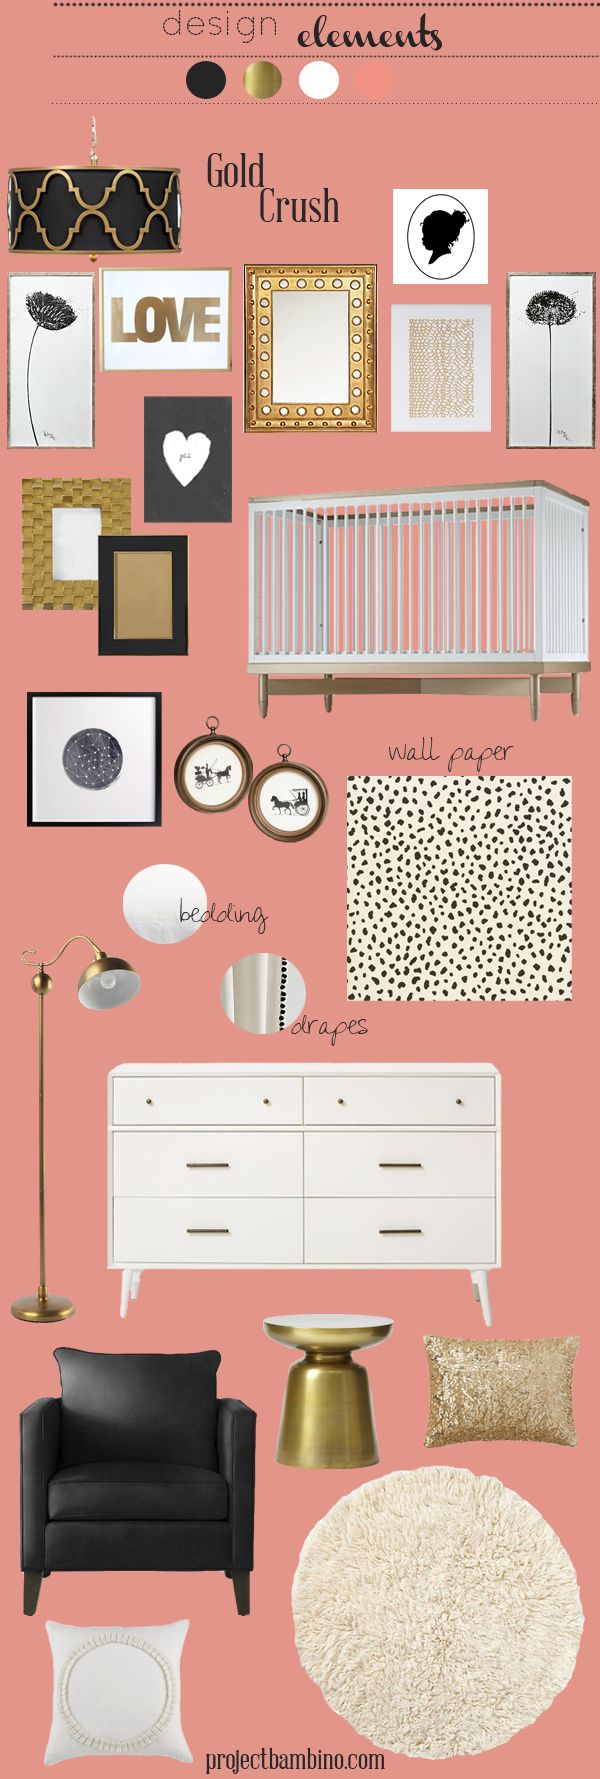 gold crush nursery design board for those of you who love gold! Check out PB for all the resources.